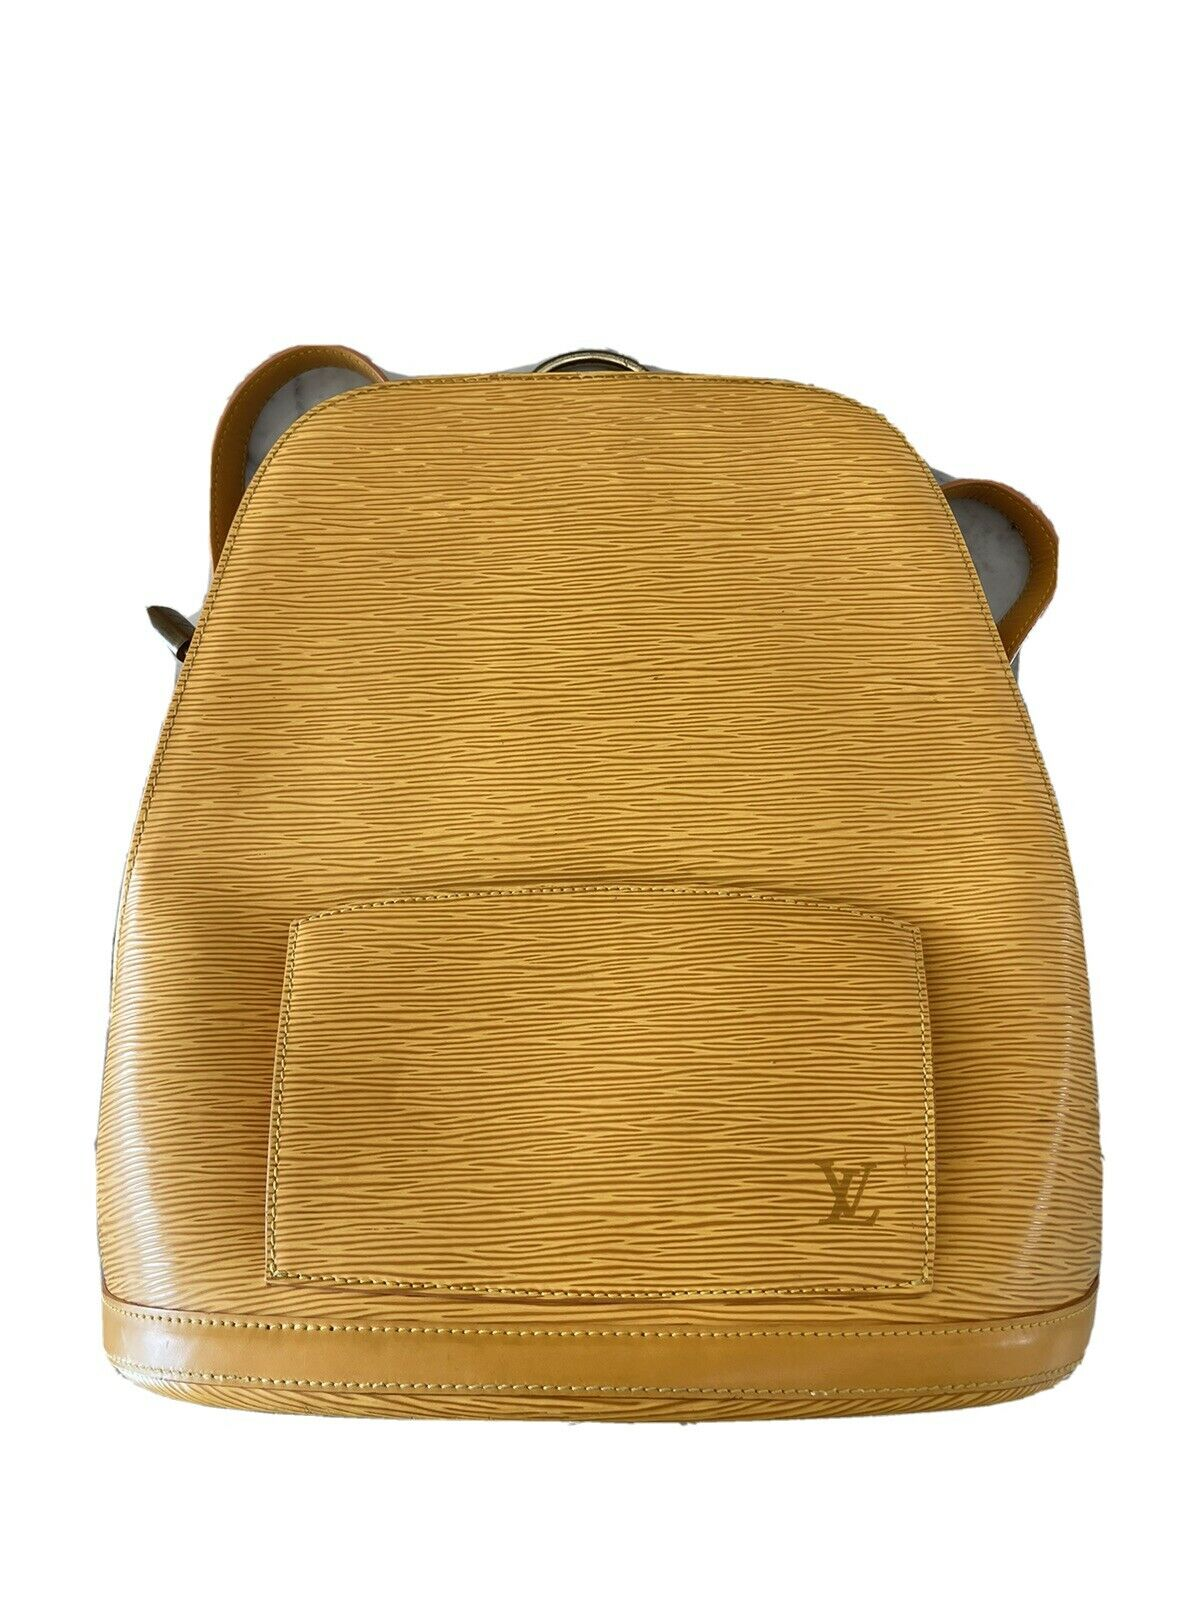 louis vuitton backpack - image 1